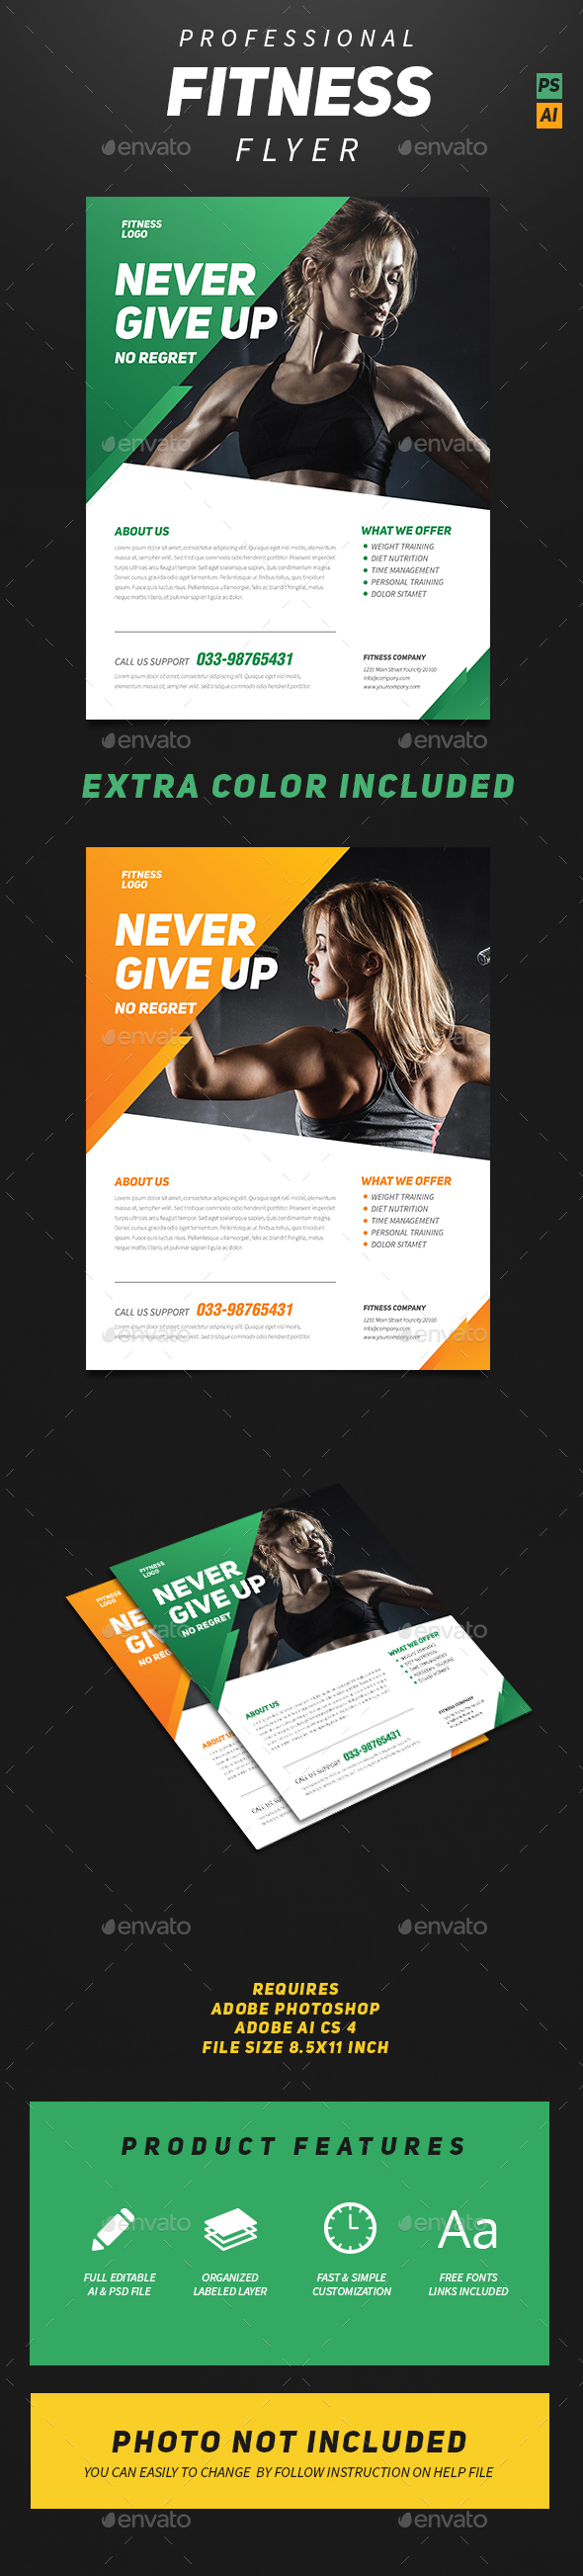 Professional Fitness Flyer